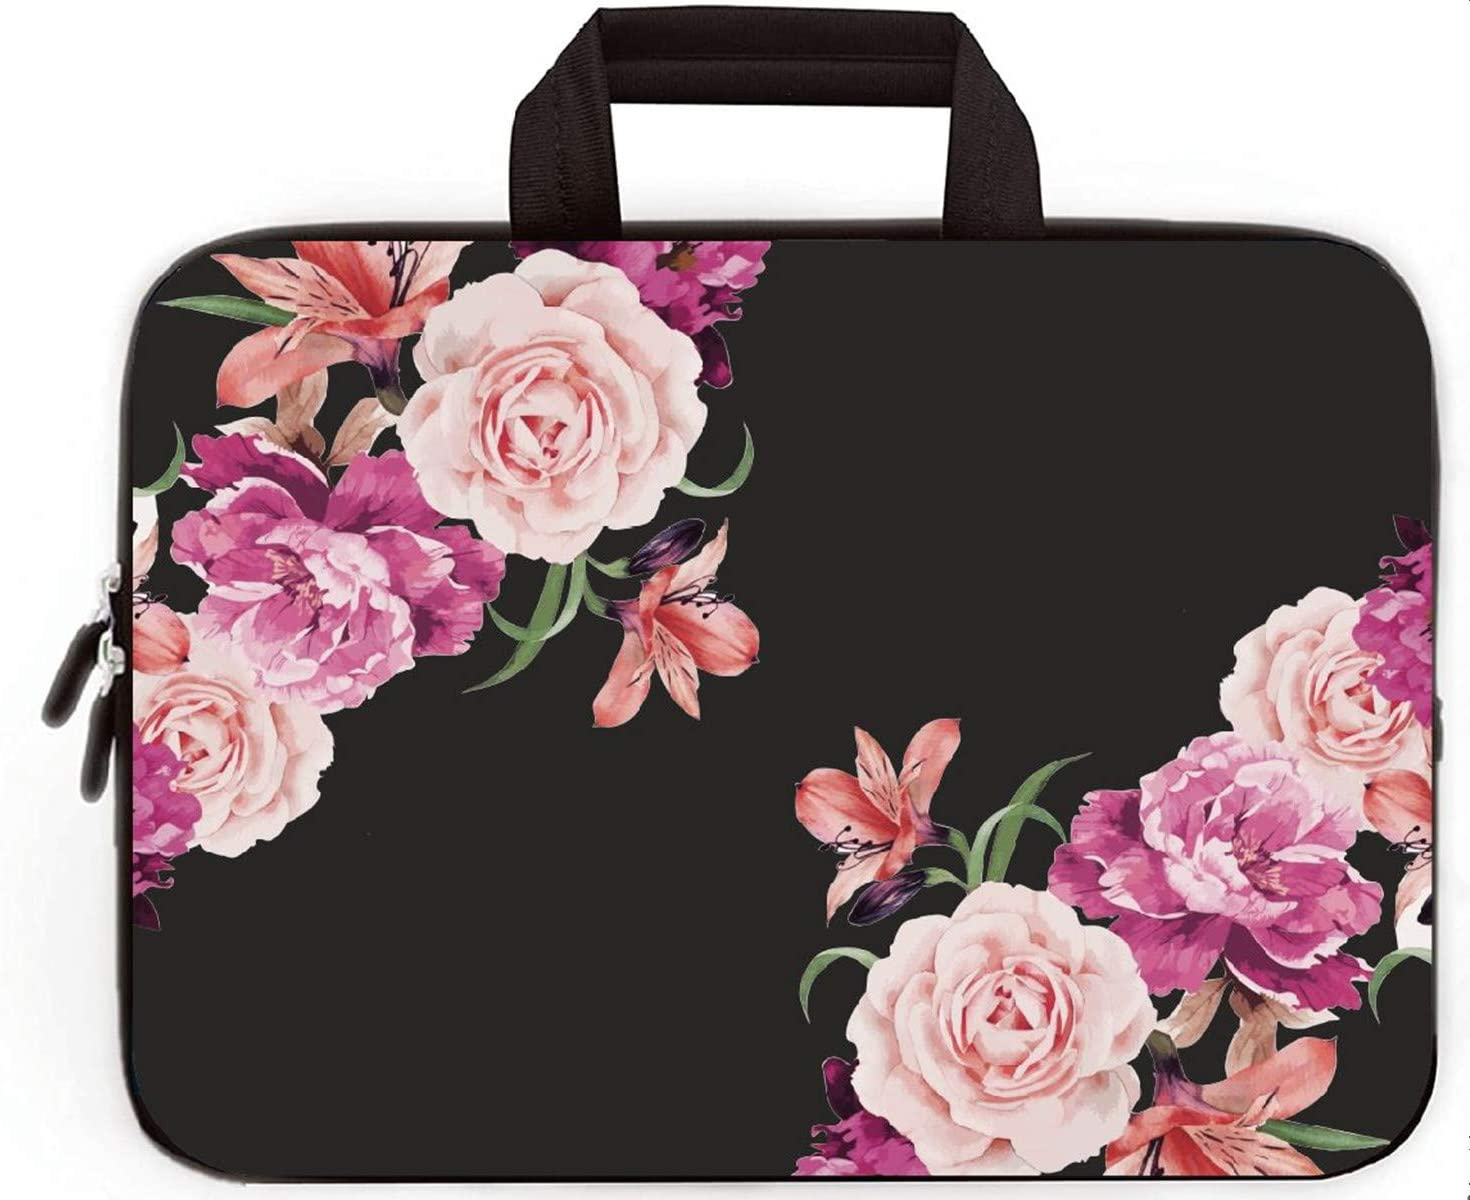 """11"""" 11.6"""" 12"""" 12.1"""" 12.5"""" inch Laptop Carrying Bag Chromebook Case Notebook Ultrabook Bag Tablet Cover Neoprene Fit Samsung Google Acer HP DELL Lenovo Asus (11 11.6 12.1 12.2 inch, Peony Flower)"""